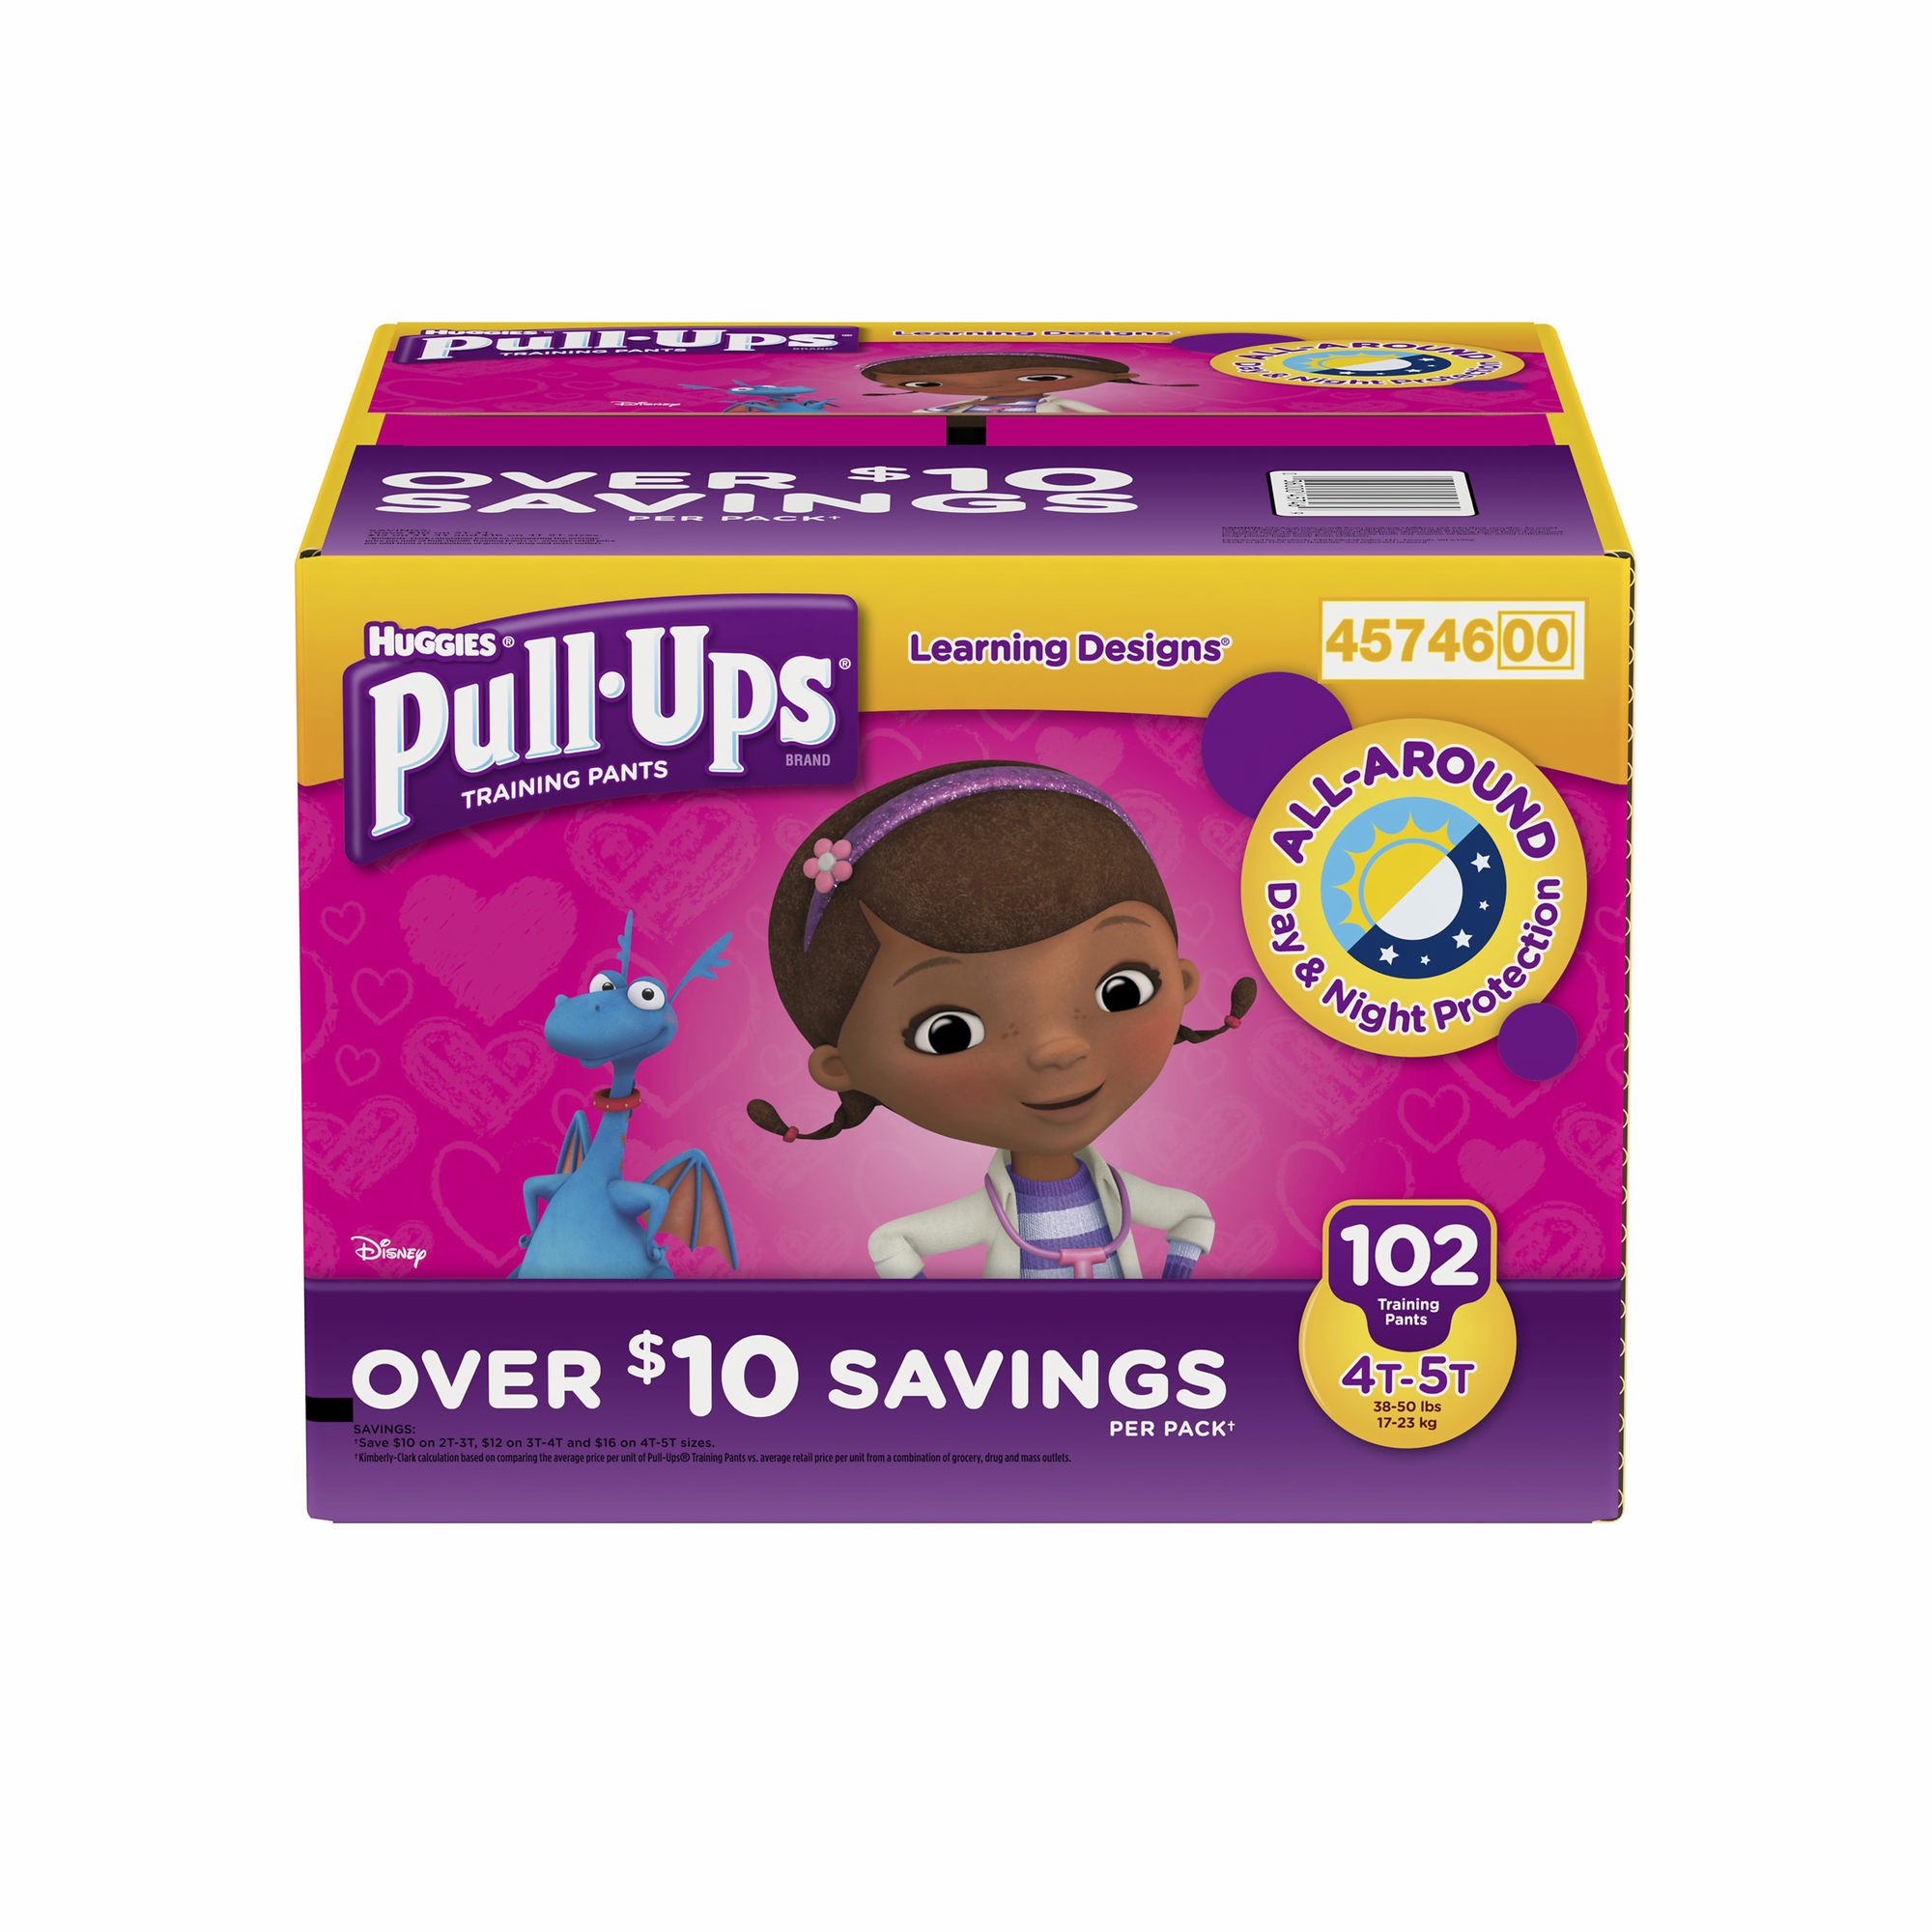 Pull-Ups Learning Designs Training Pants for Girls- Size 4T-5T - Qty 102 pieces each - Branded Diapers at a wholesale price - Soft & Comfortable for babies